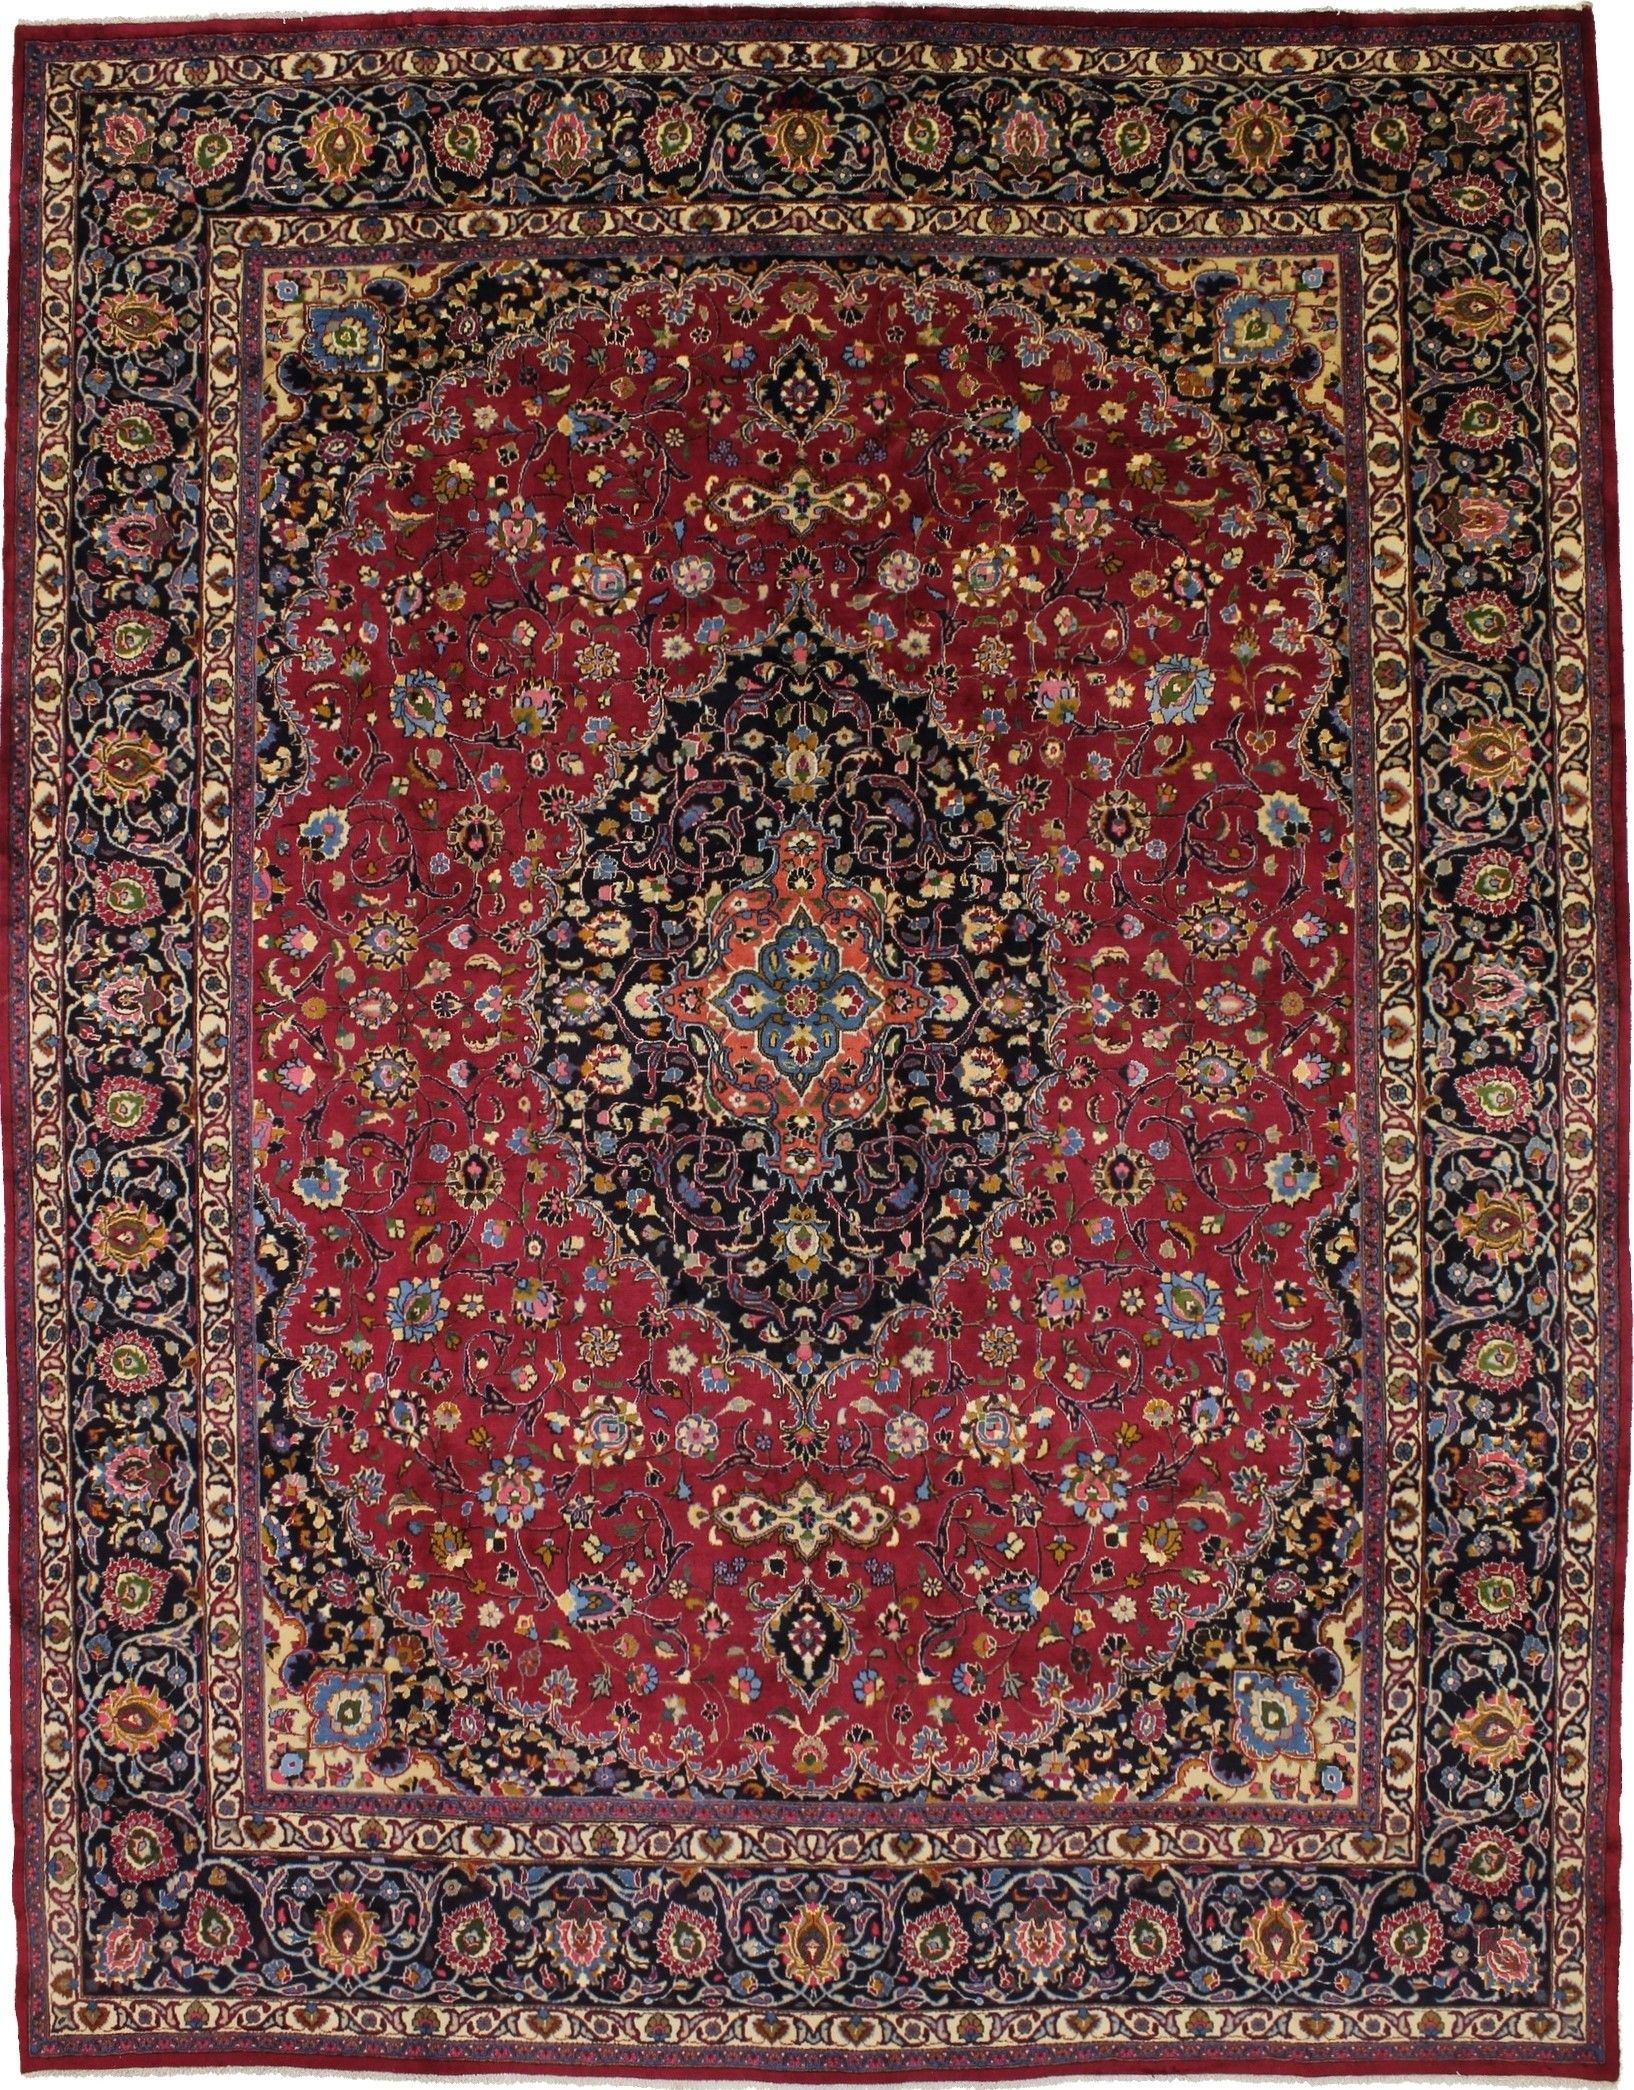 Breathtaking Oversized Signed Sabzevar Persian Rug Oriental Area Carpet 11x14 1 677 90 Picclick Vintage Persian Rug Antique Persian Rug Area Carpet